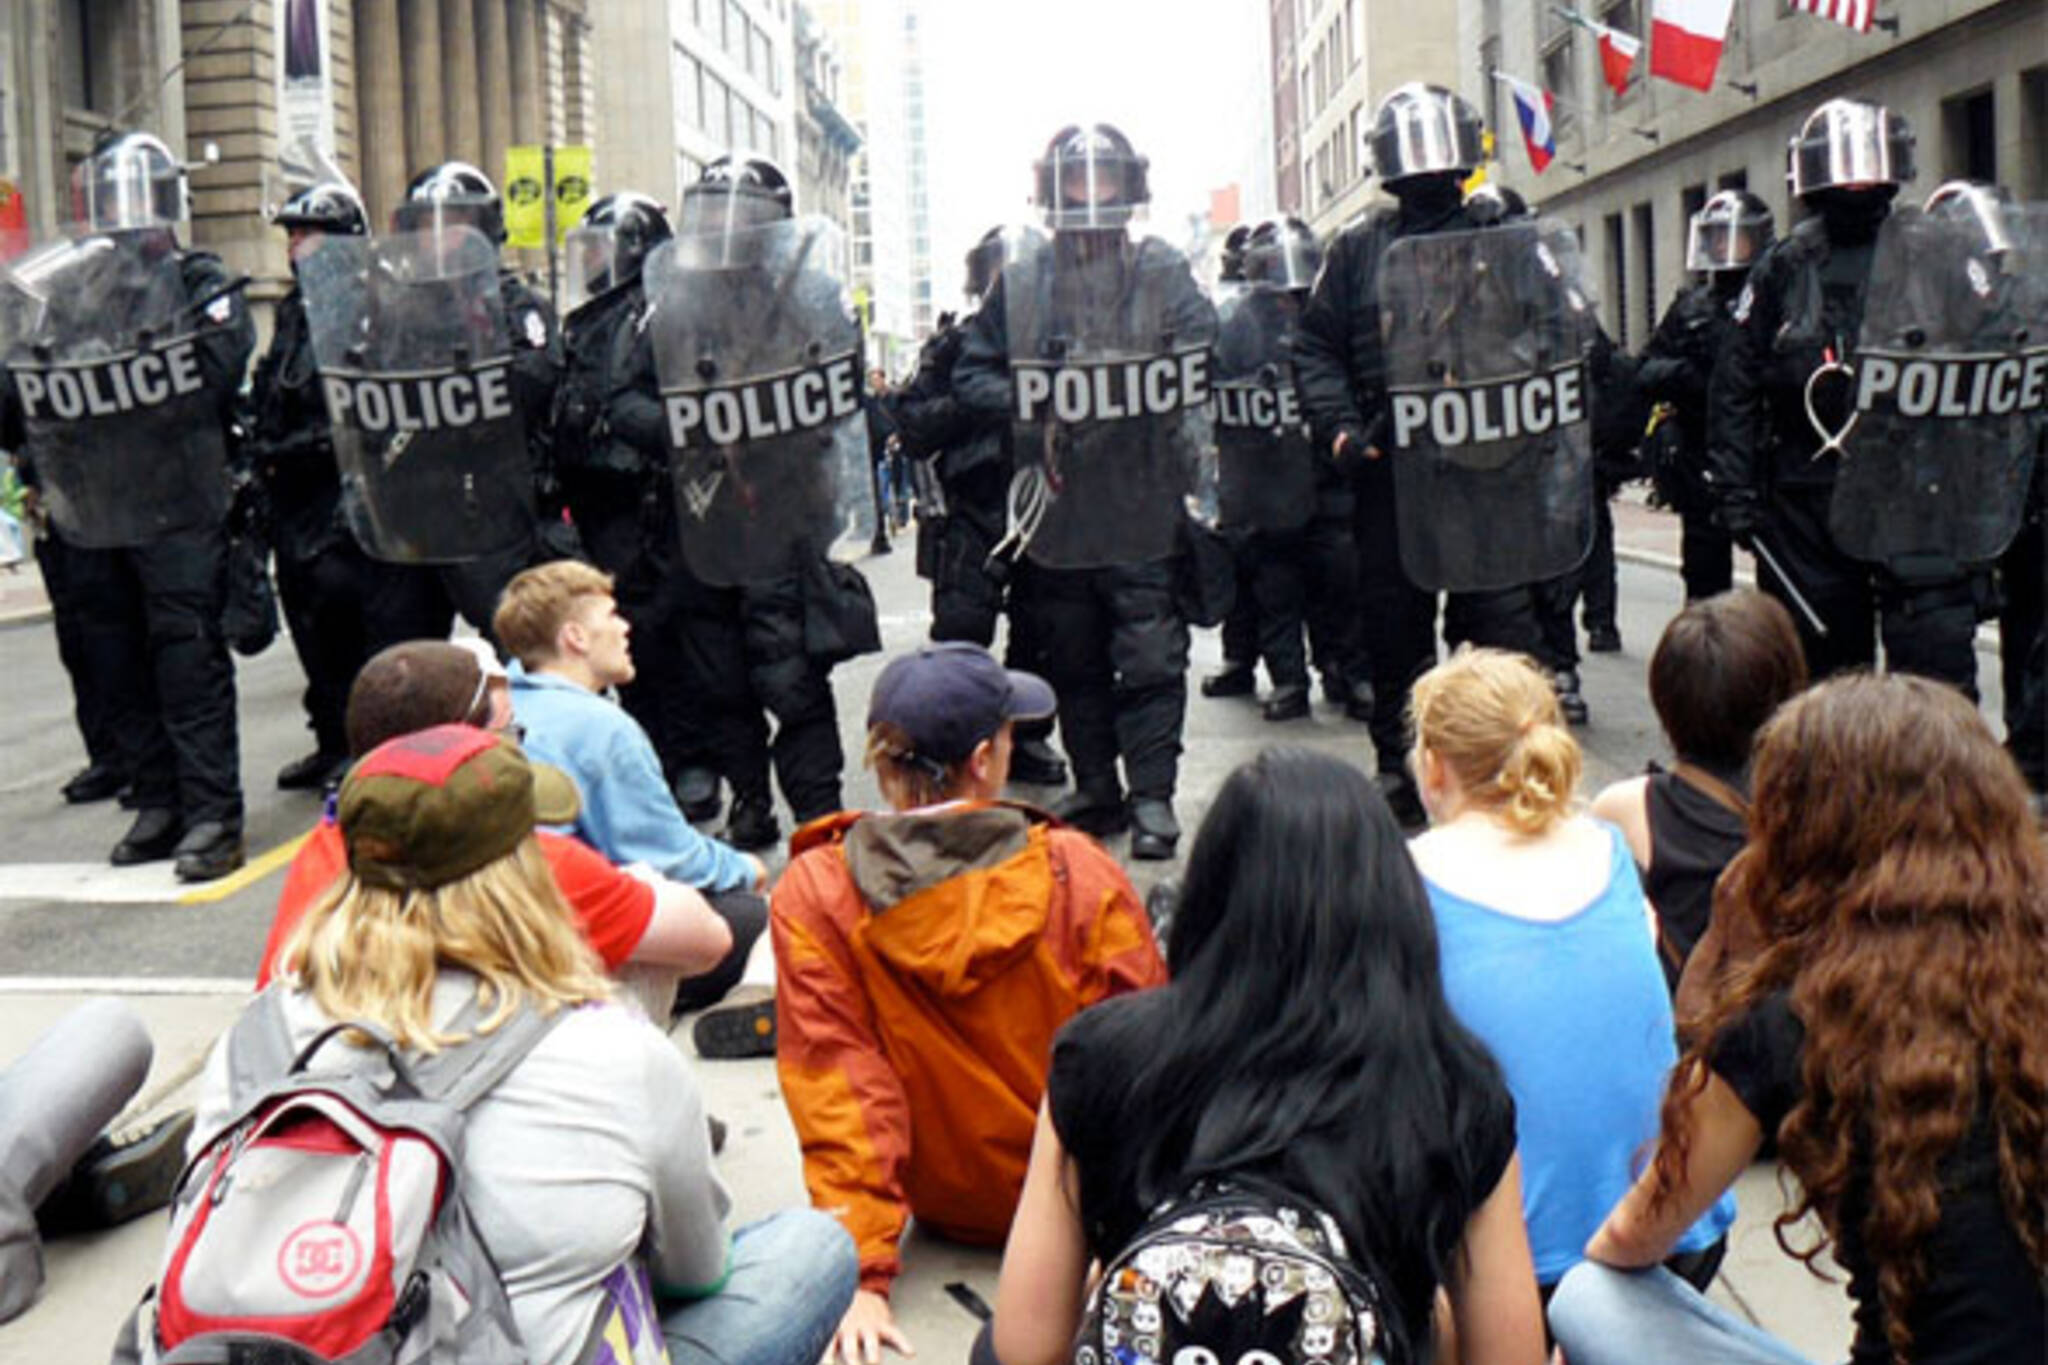 g20 protest videos